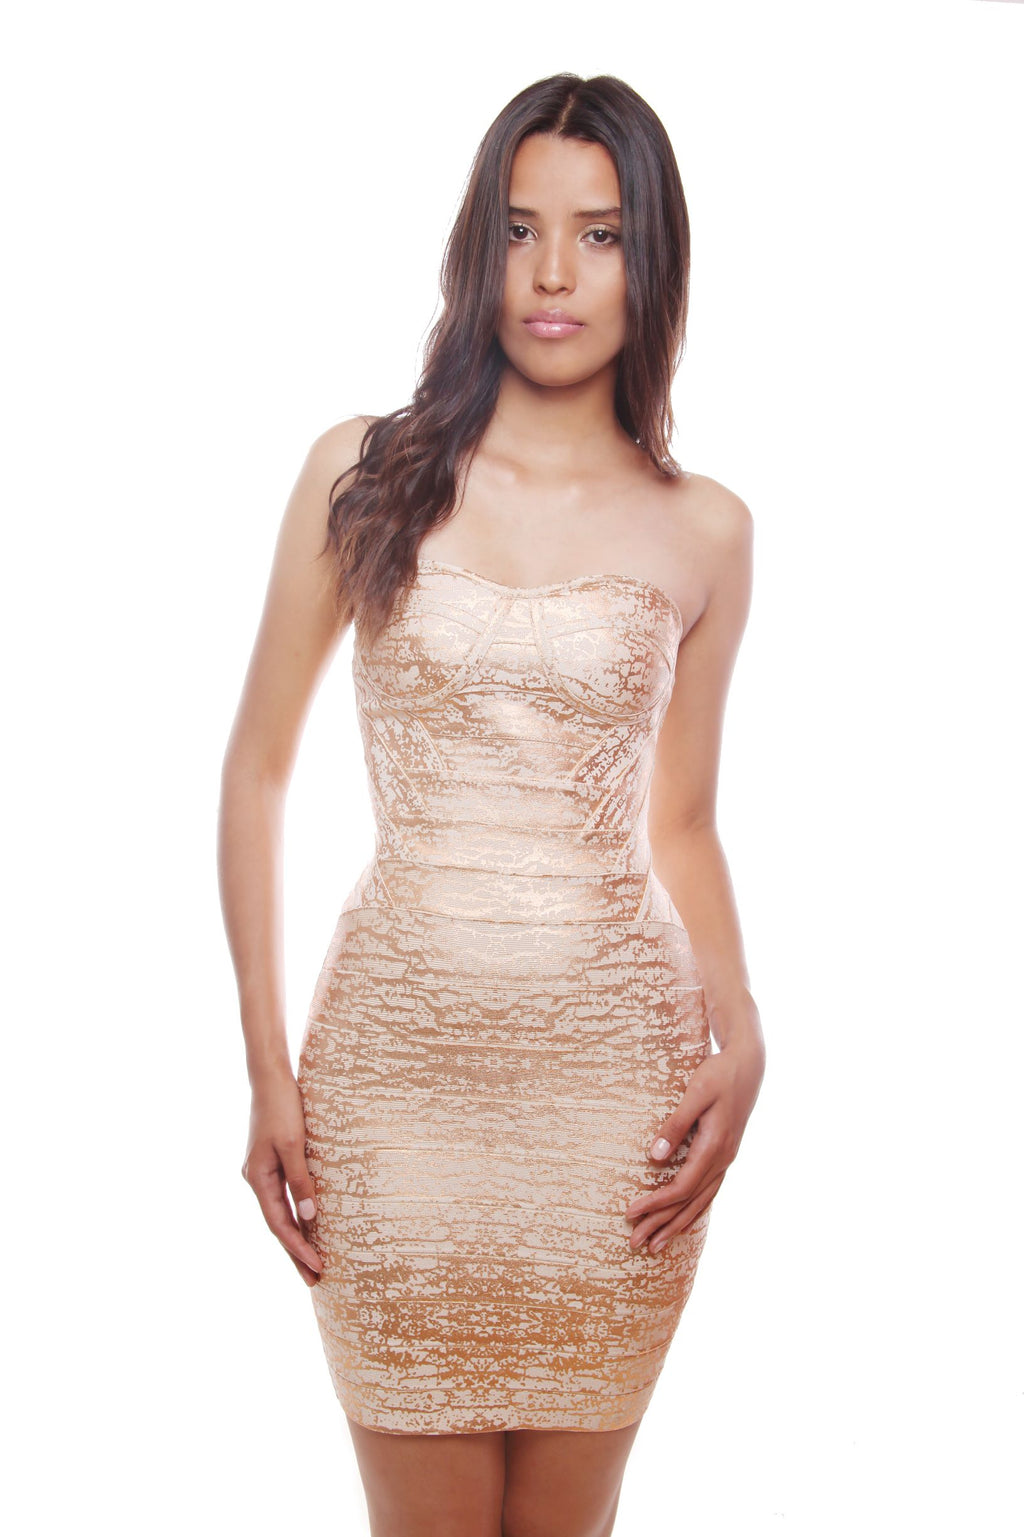 Karen Strapless Gold Foiled Bandage Dress